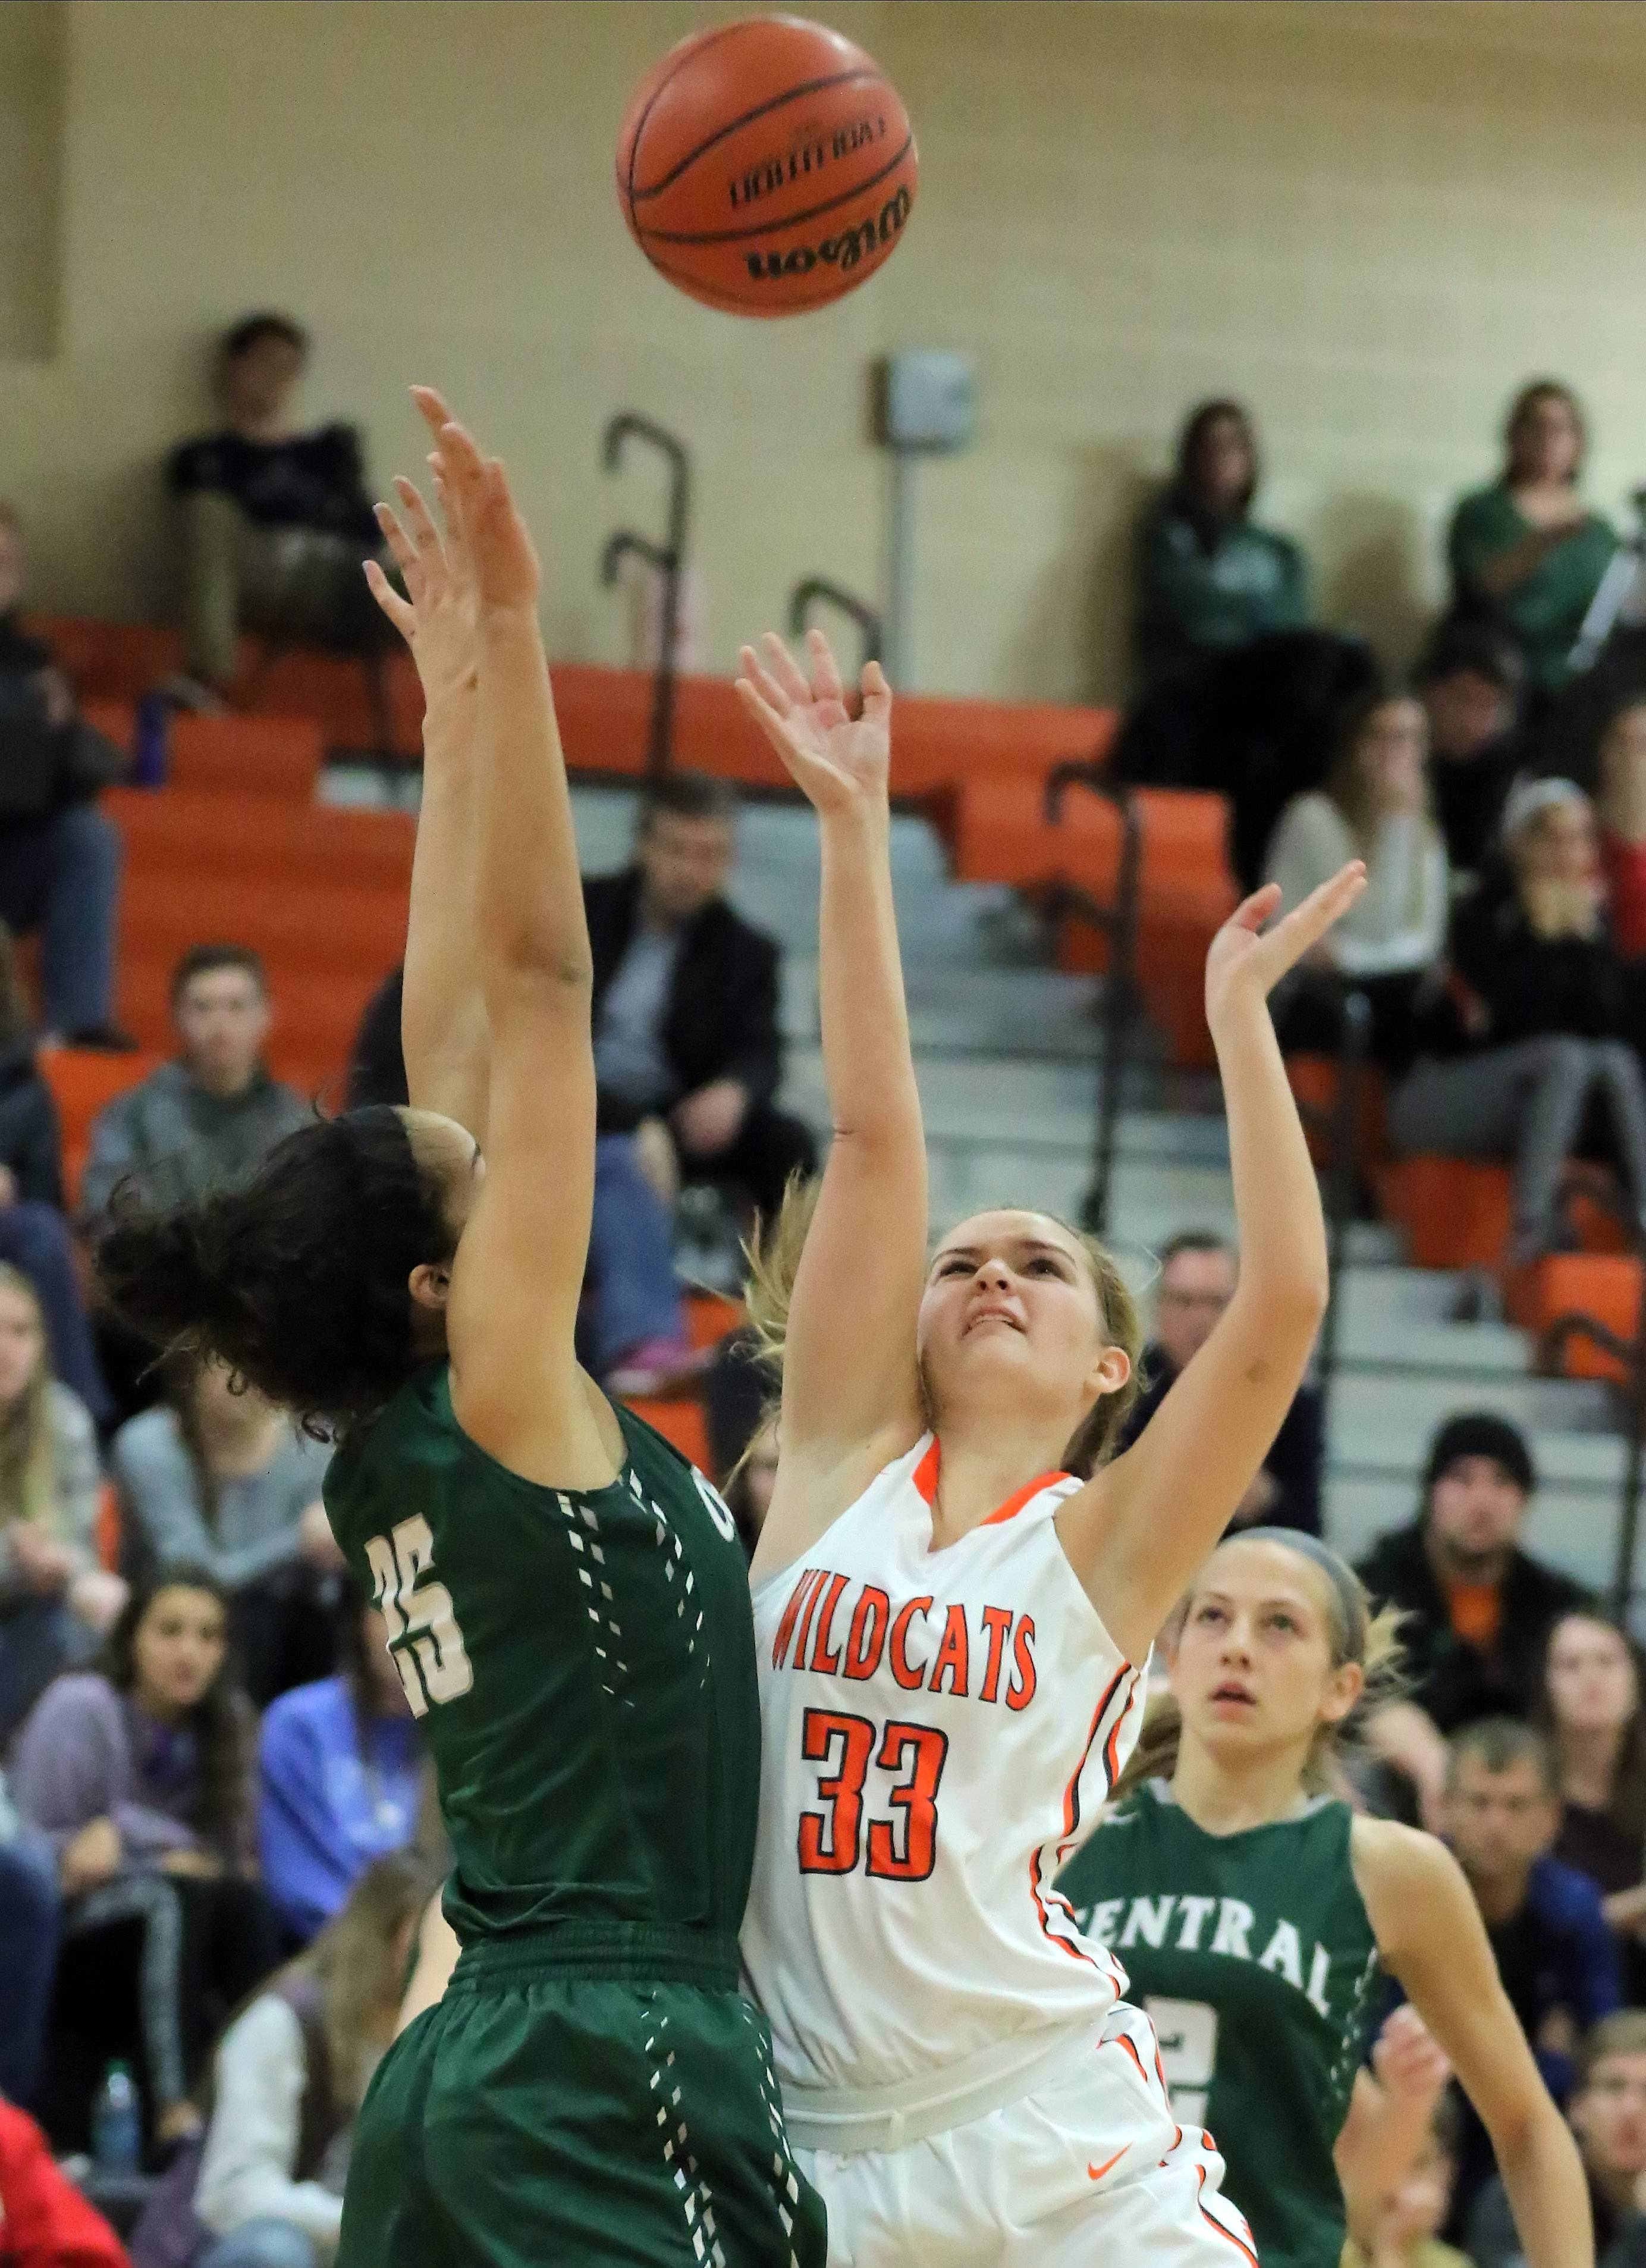 Libertyville's Morgan Manski, right, drives on Grayslake Central's Ania Barnes on Tuesday night at Libertyville.